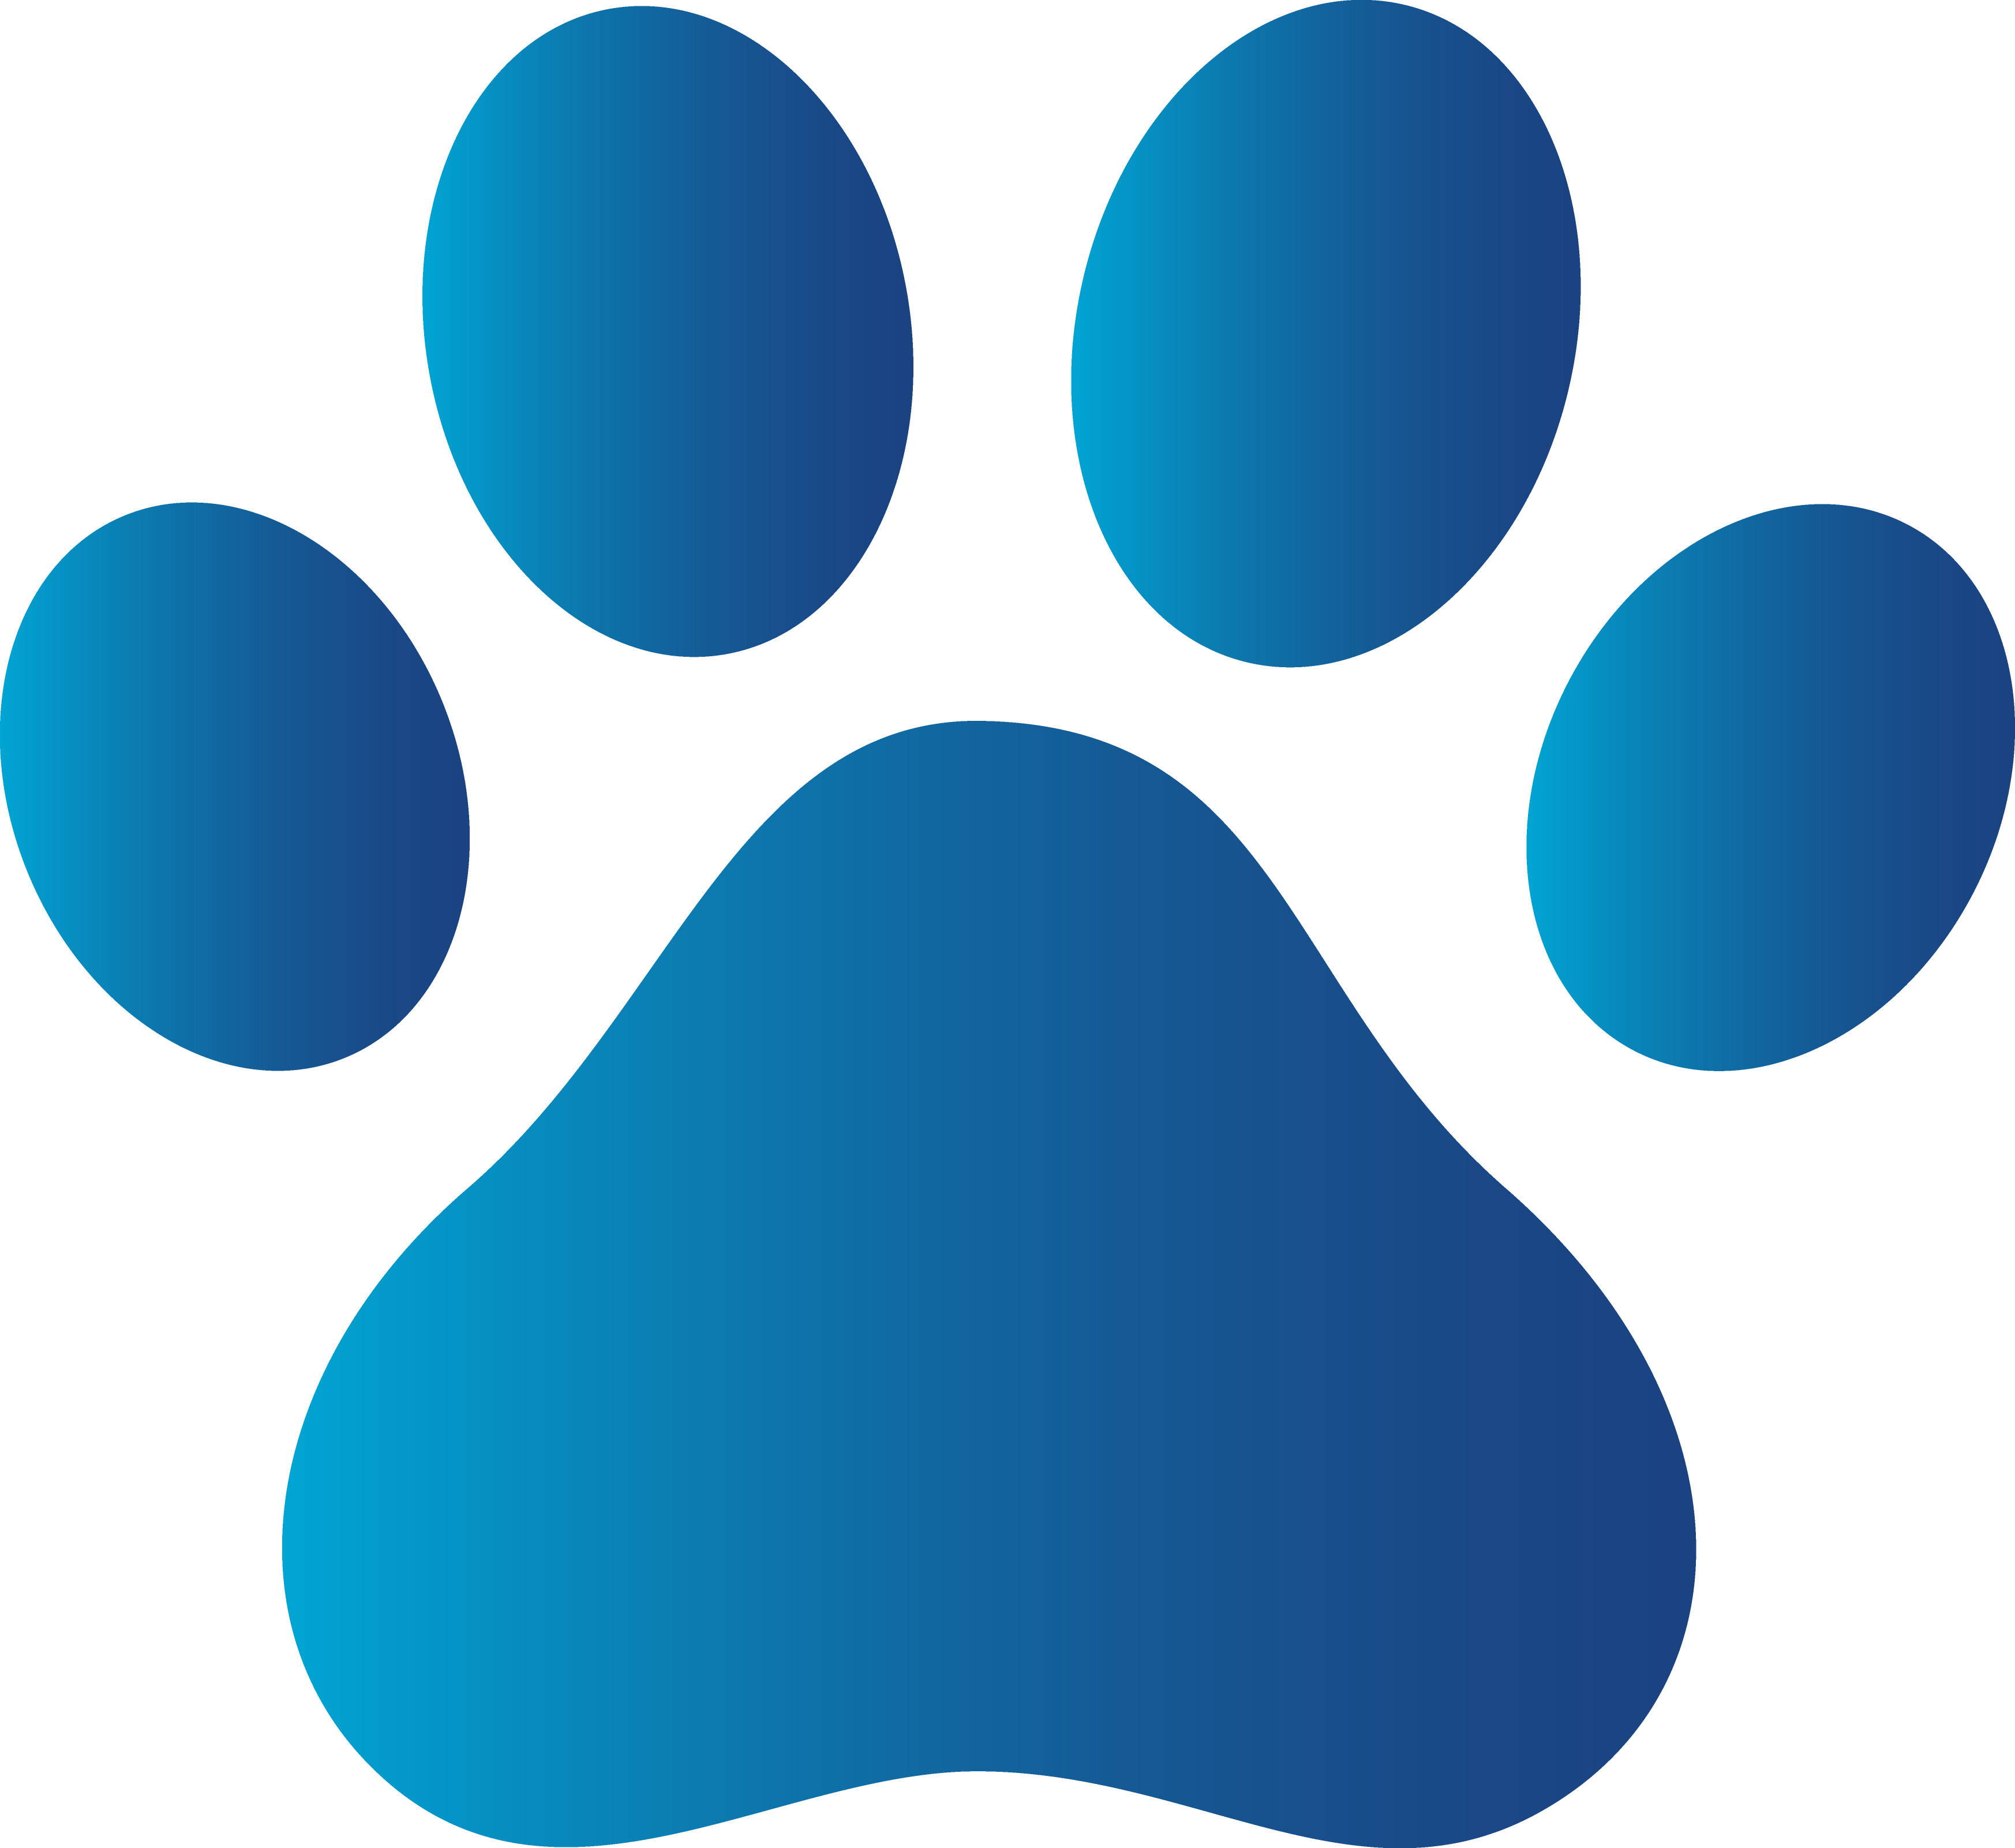 Clipart Dog Paw - Cliparts.co